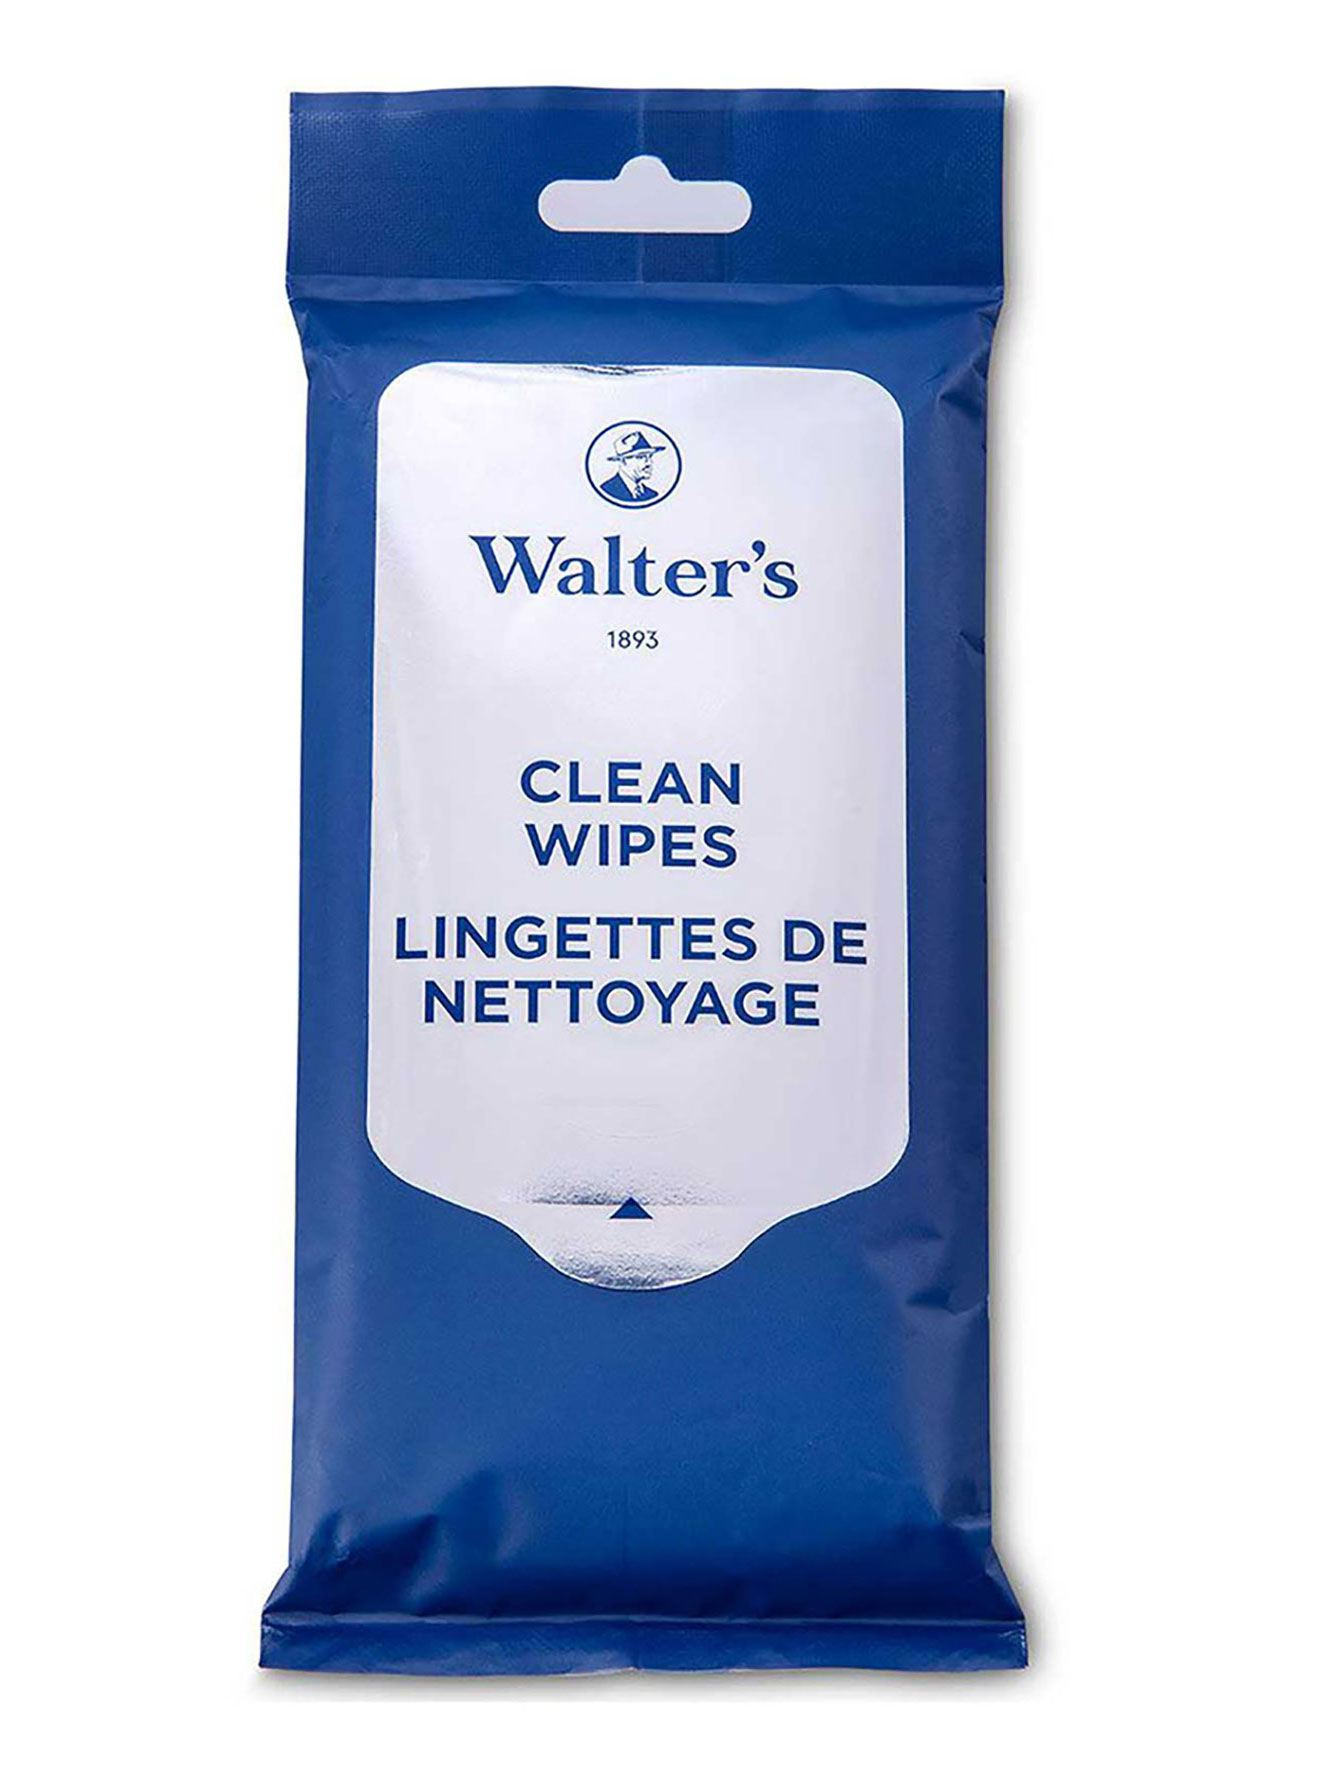 Shoe Cleaning Wipes - Walter's